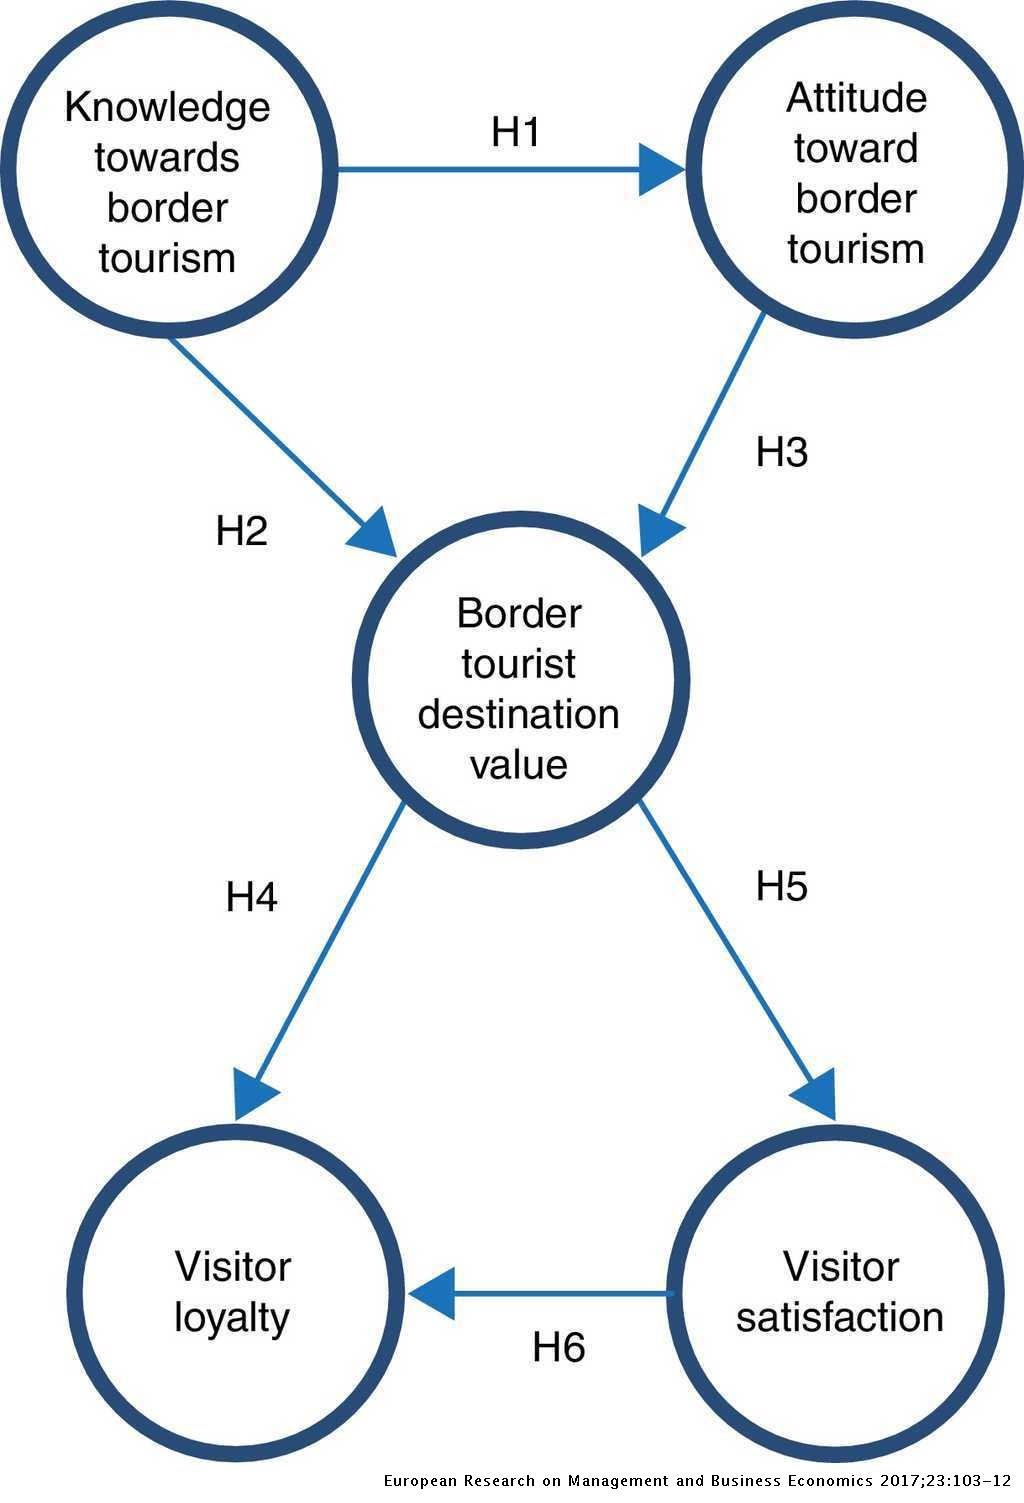 Satisfaction in border tourism: An analysis with structural